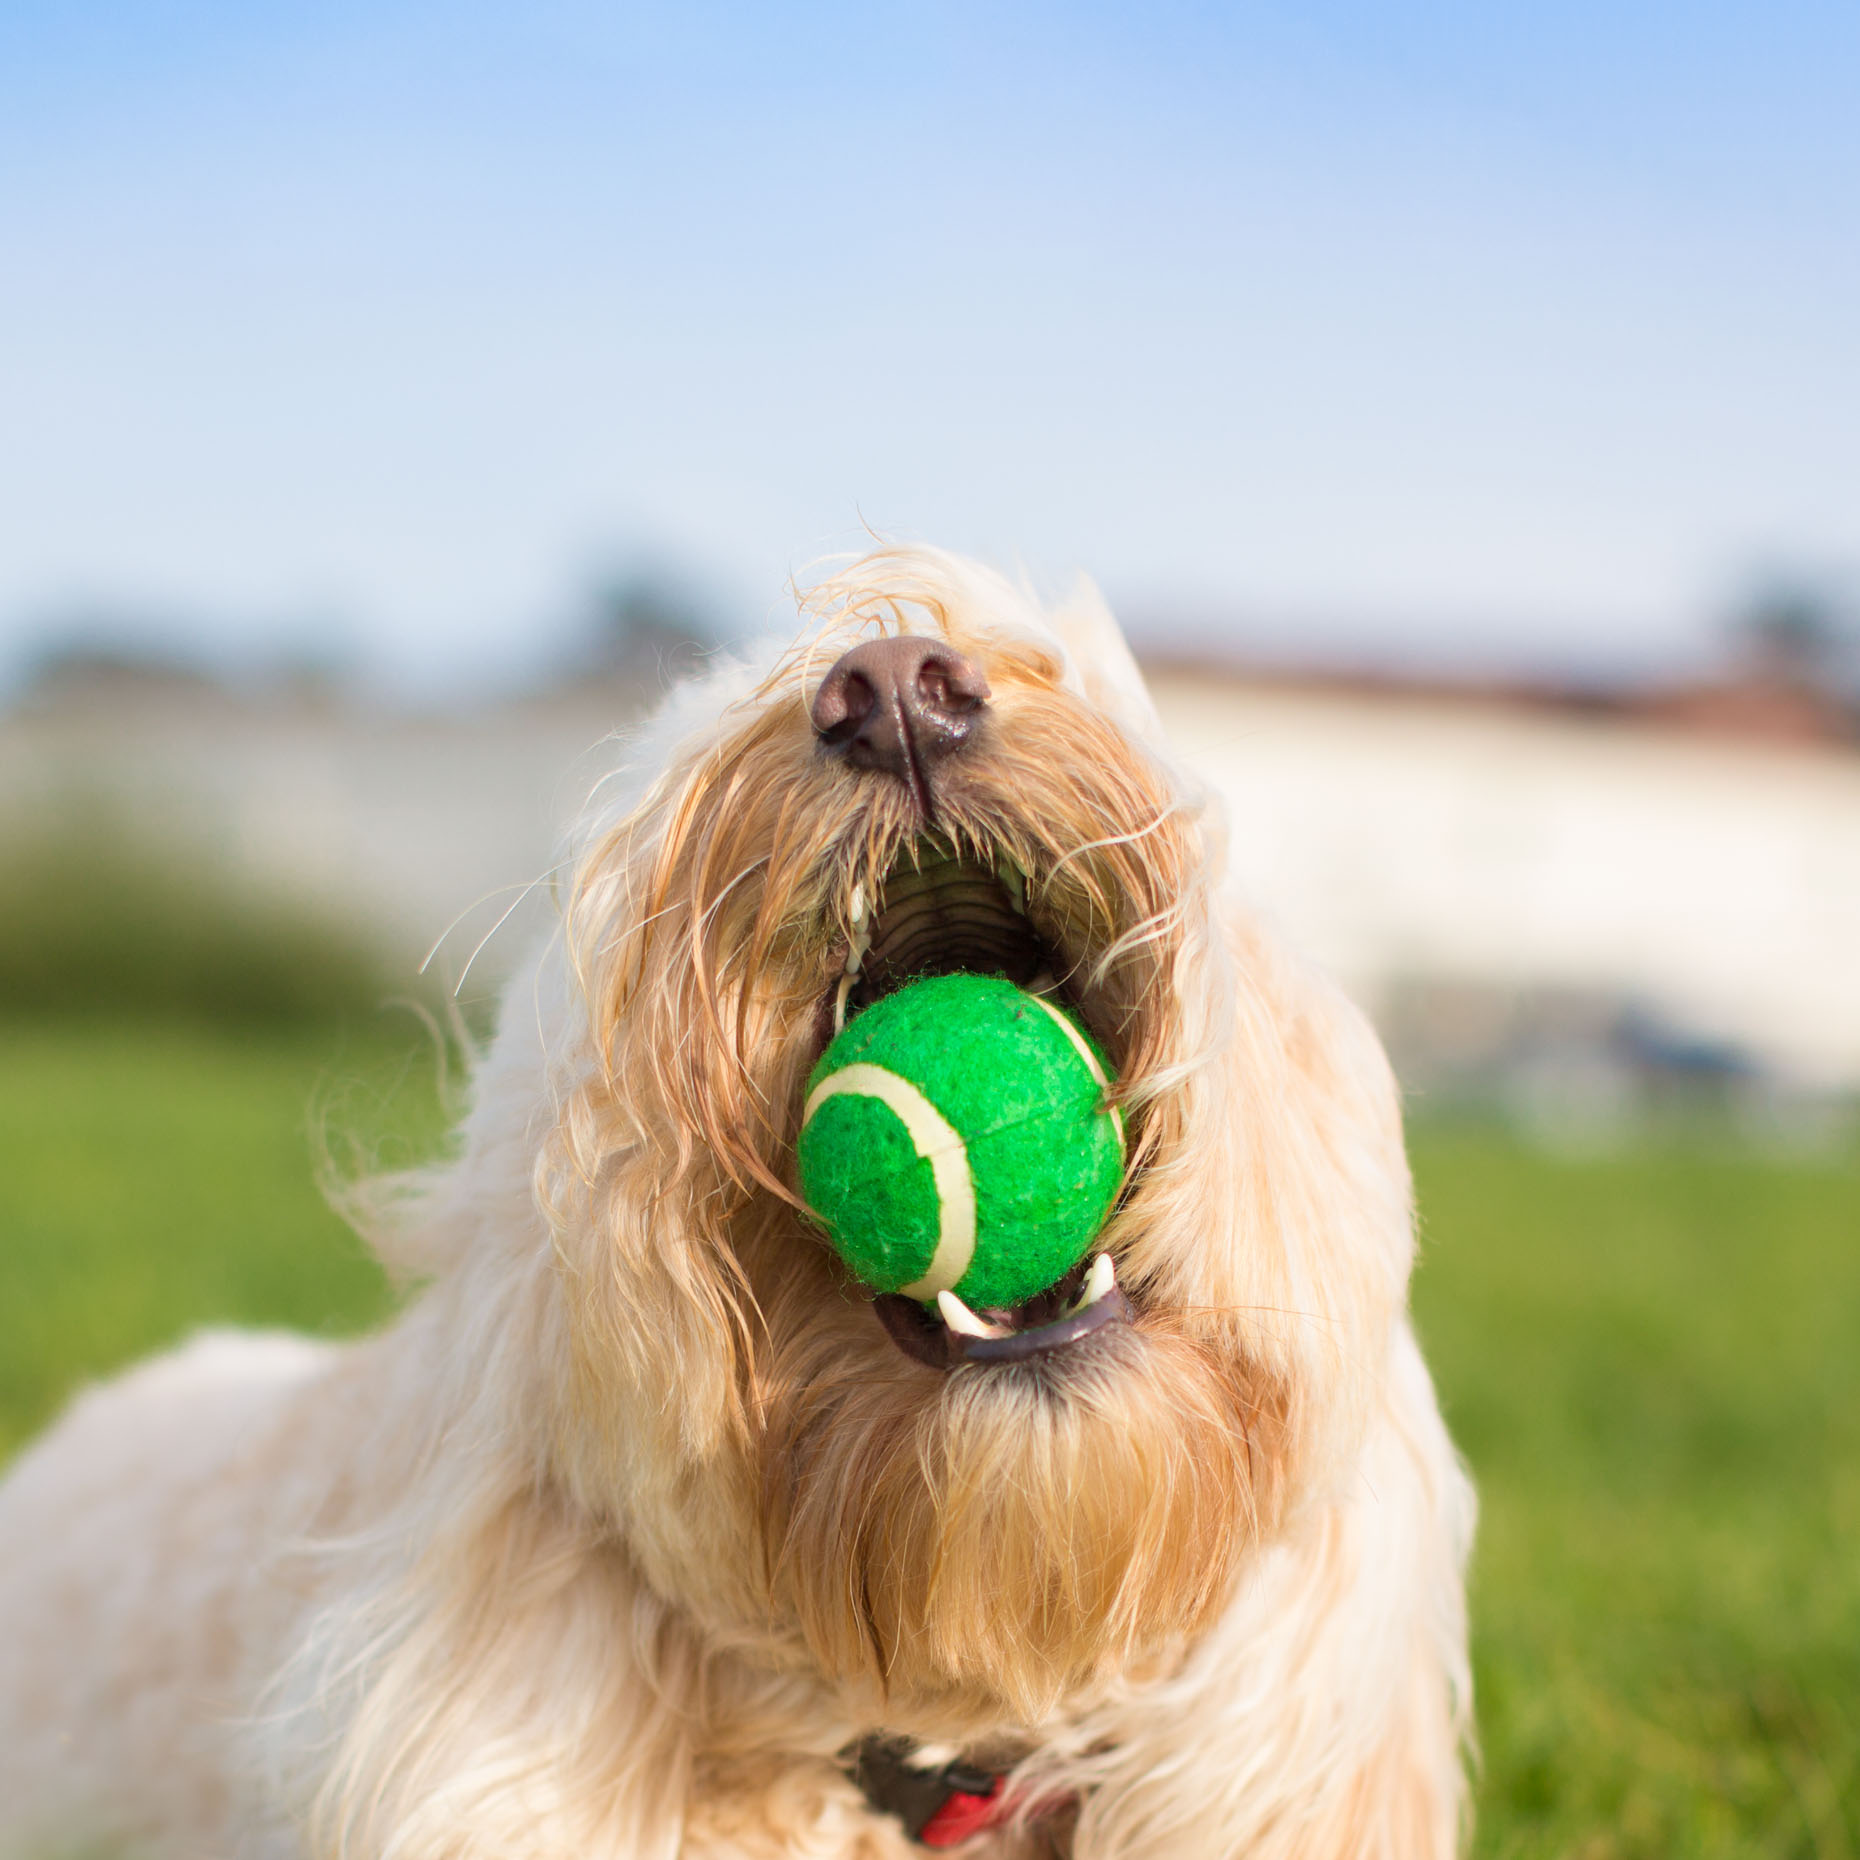 Commercial Animal Photography | Dog with Ball by Mark Rogers